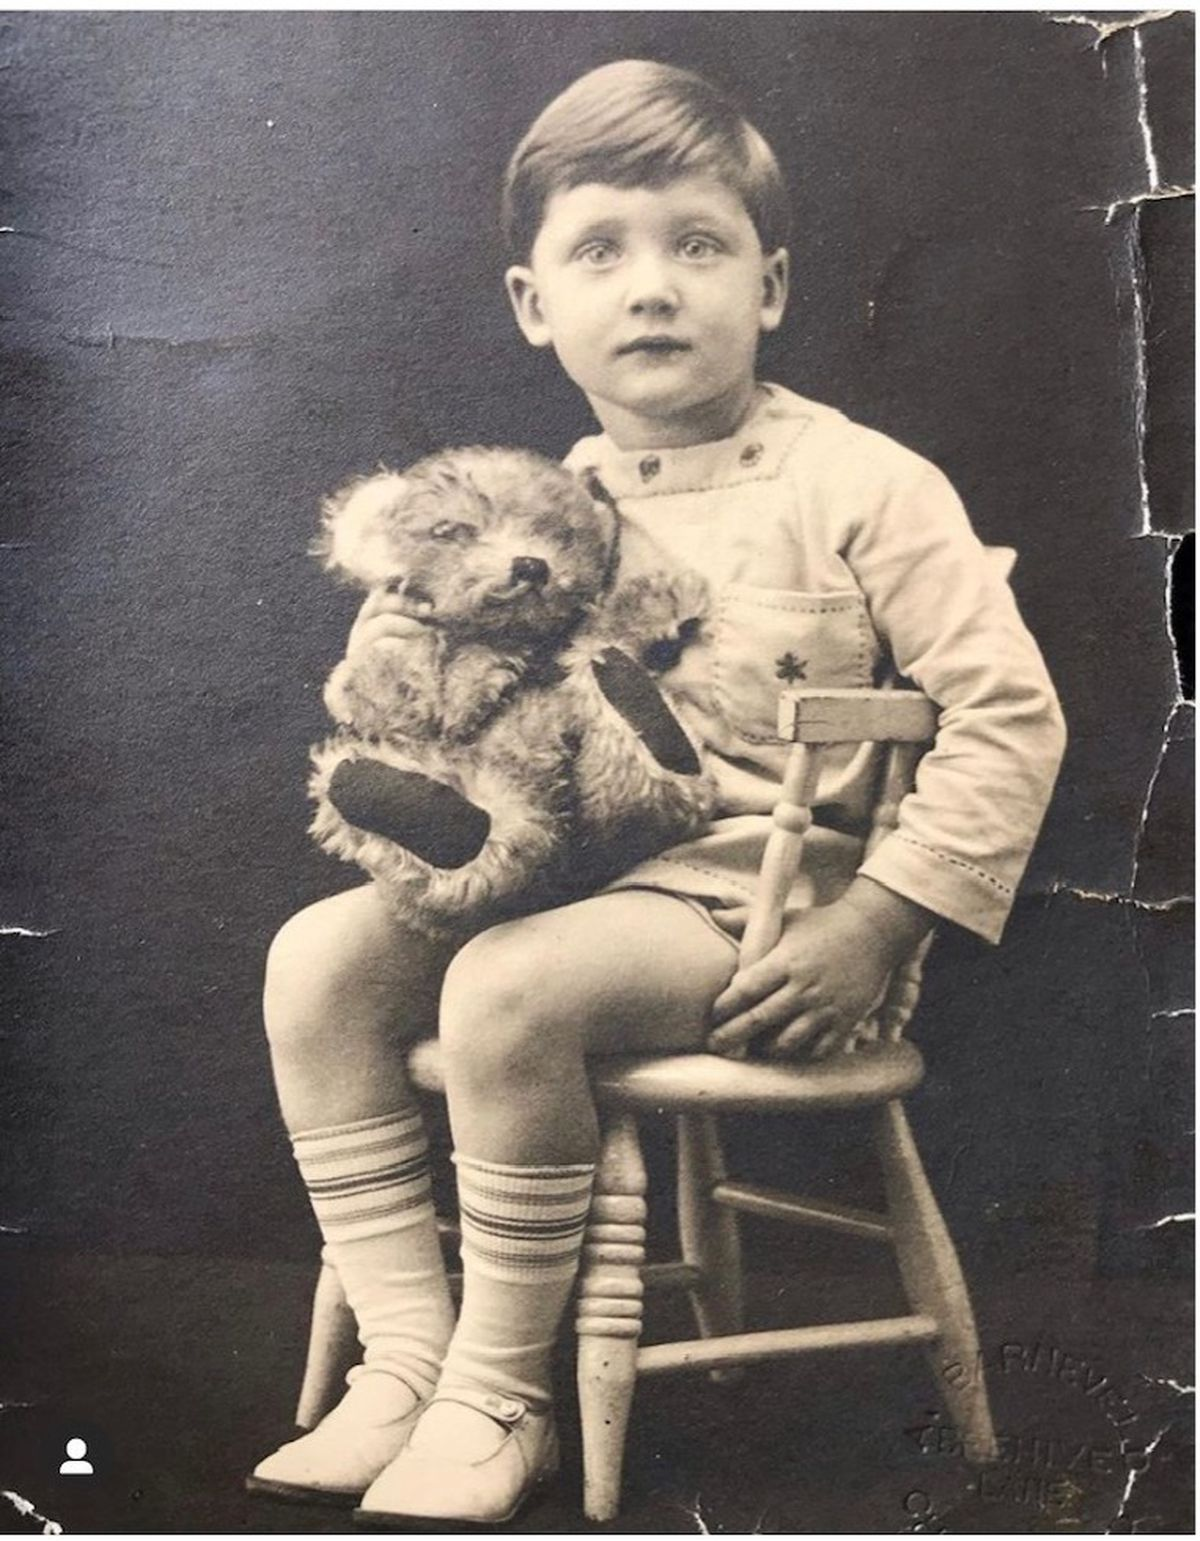 George Harwood in the same position as his grandfather, Alfred, with the same teddy bear - 86 years apart